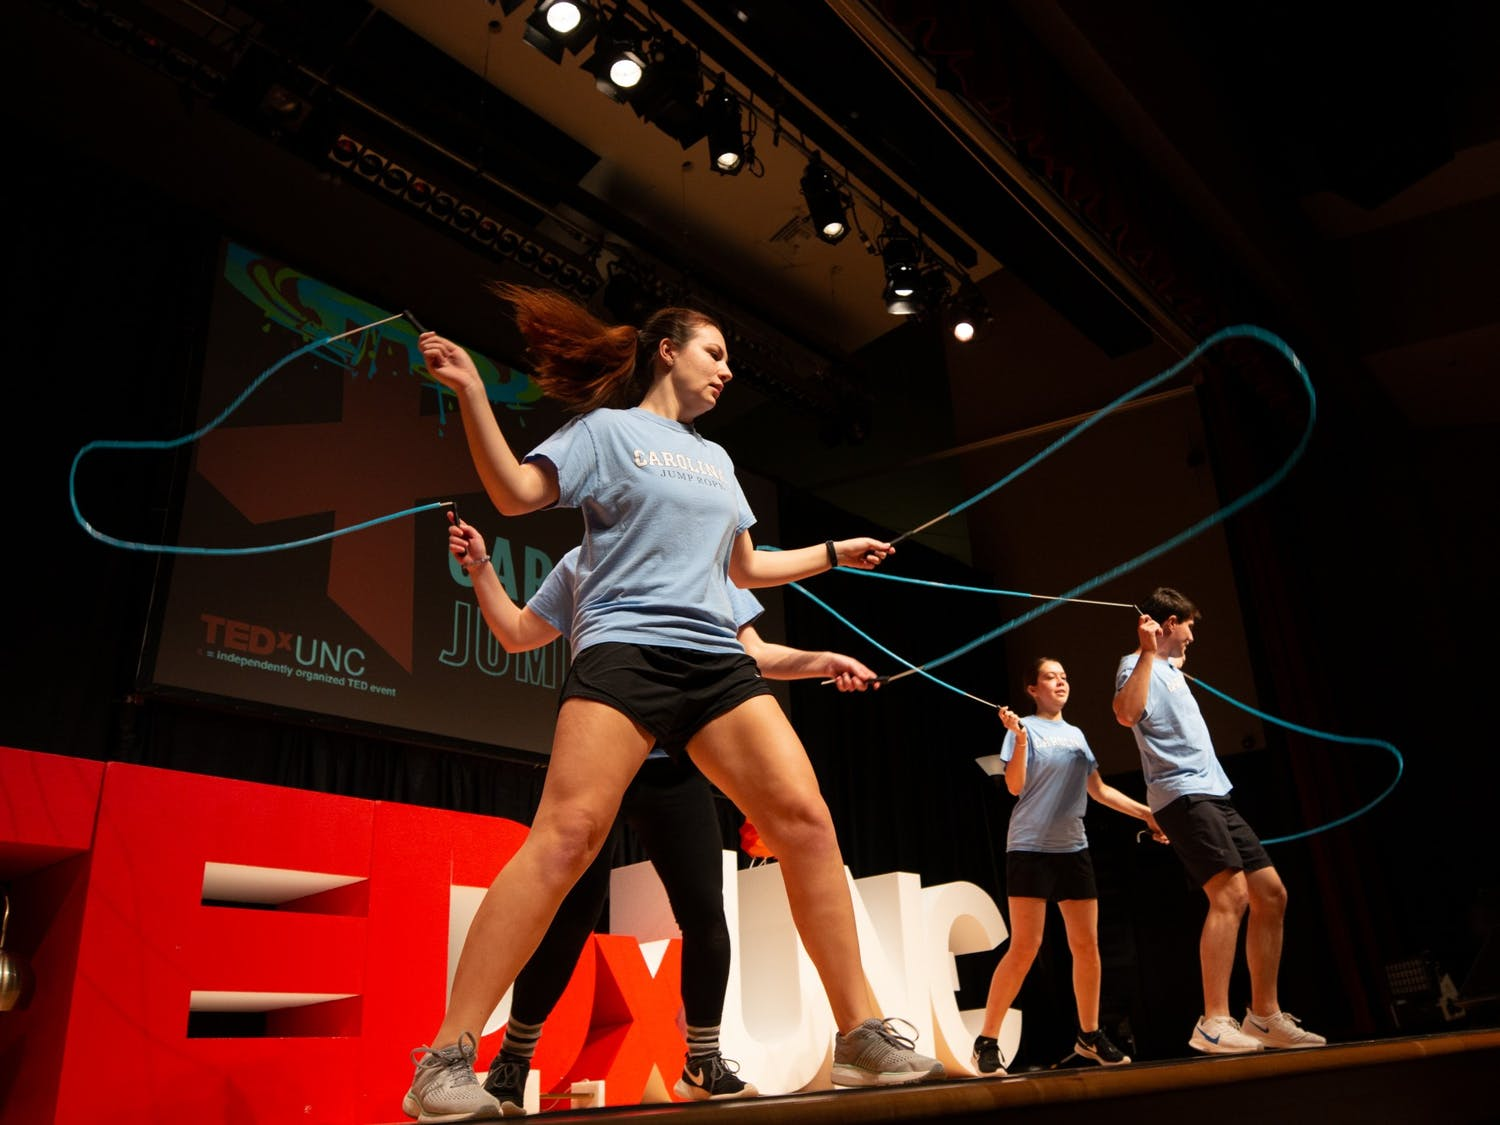 Members of UNC's Jump Rope Club performed at TEDxUNC on Saturday, Feb. 15, 2020.